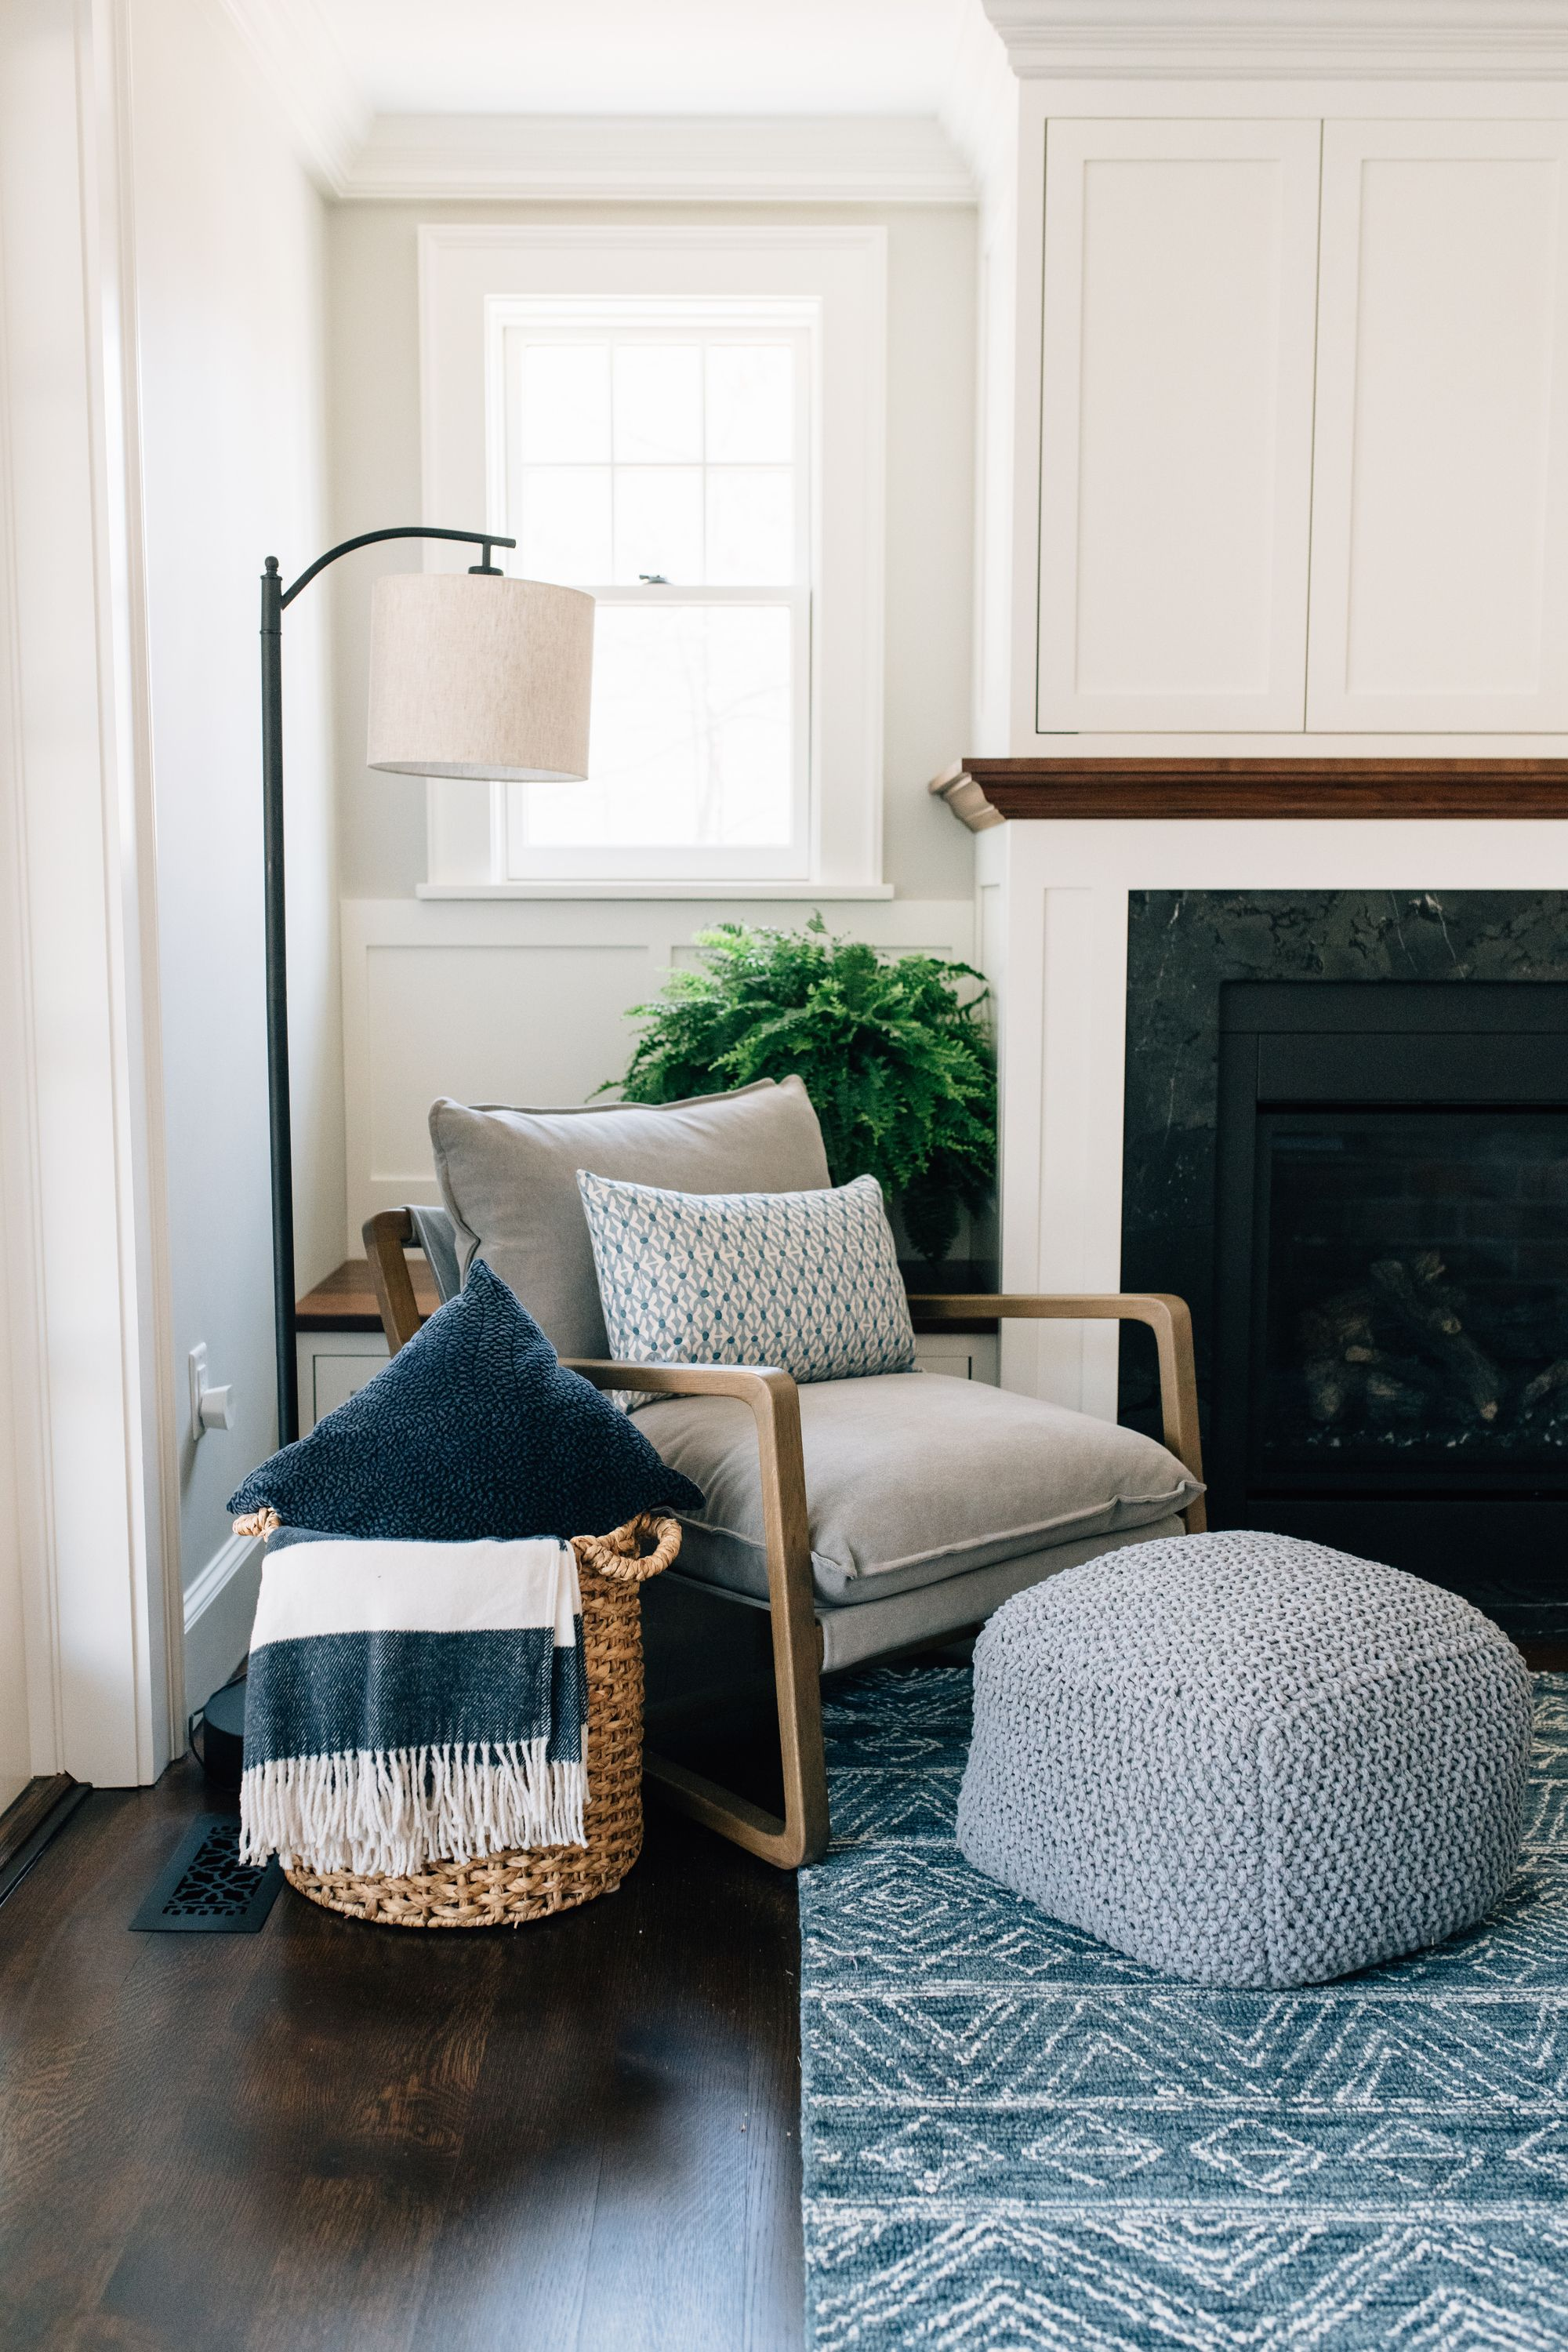 Modern Reading Nook Open Arm Chair Pouf Floor Lamp Blue And Gray Palette Fireplace Built In In 2020 Living Room Nook Bedroom Seating Area Bedroom Seating